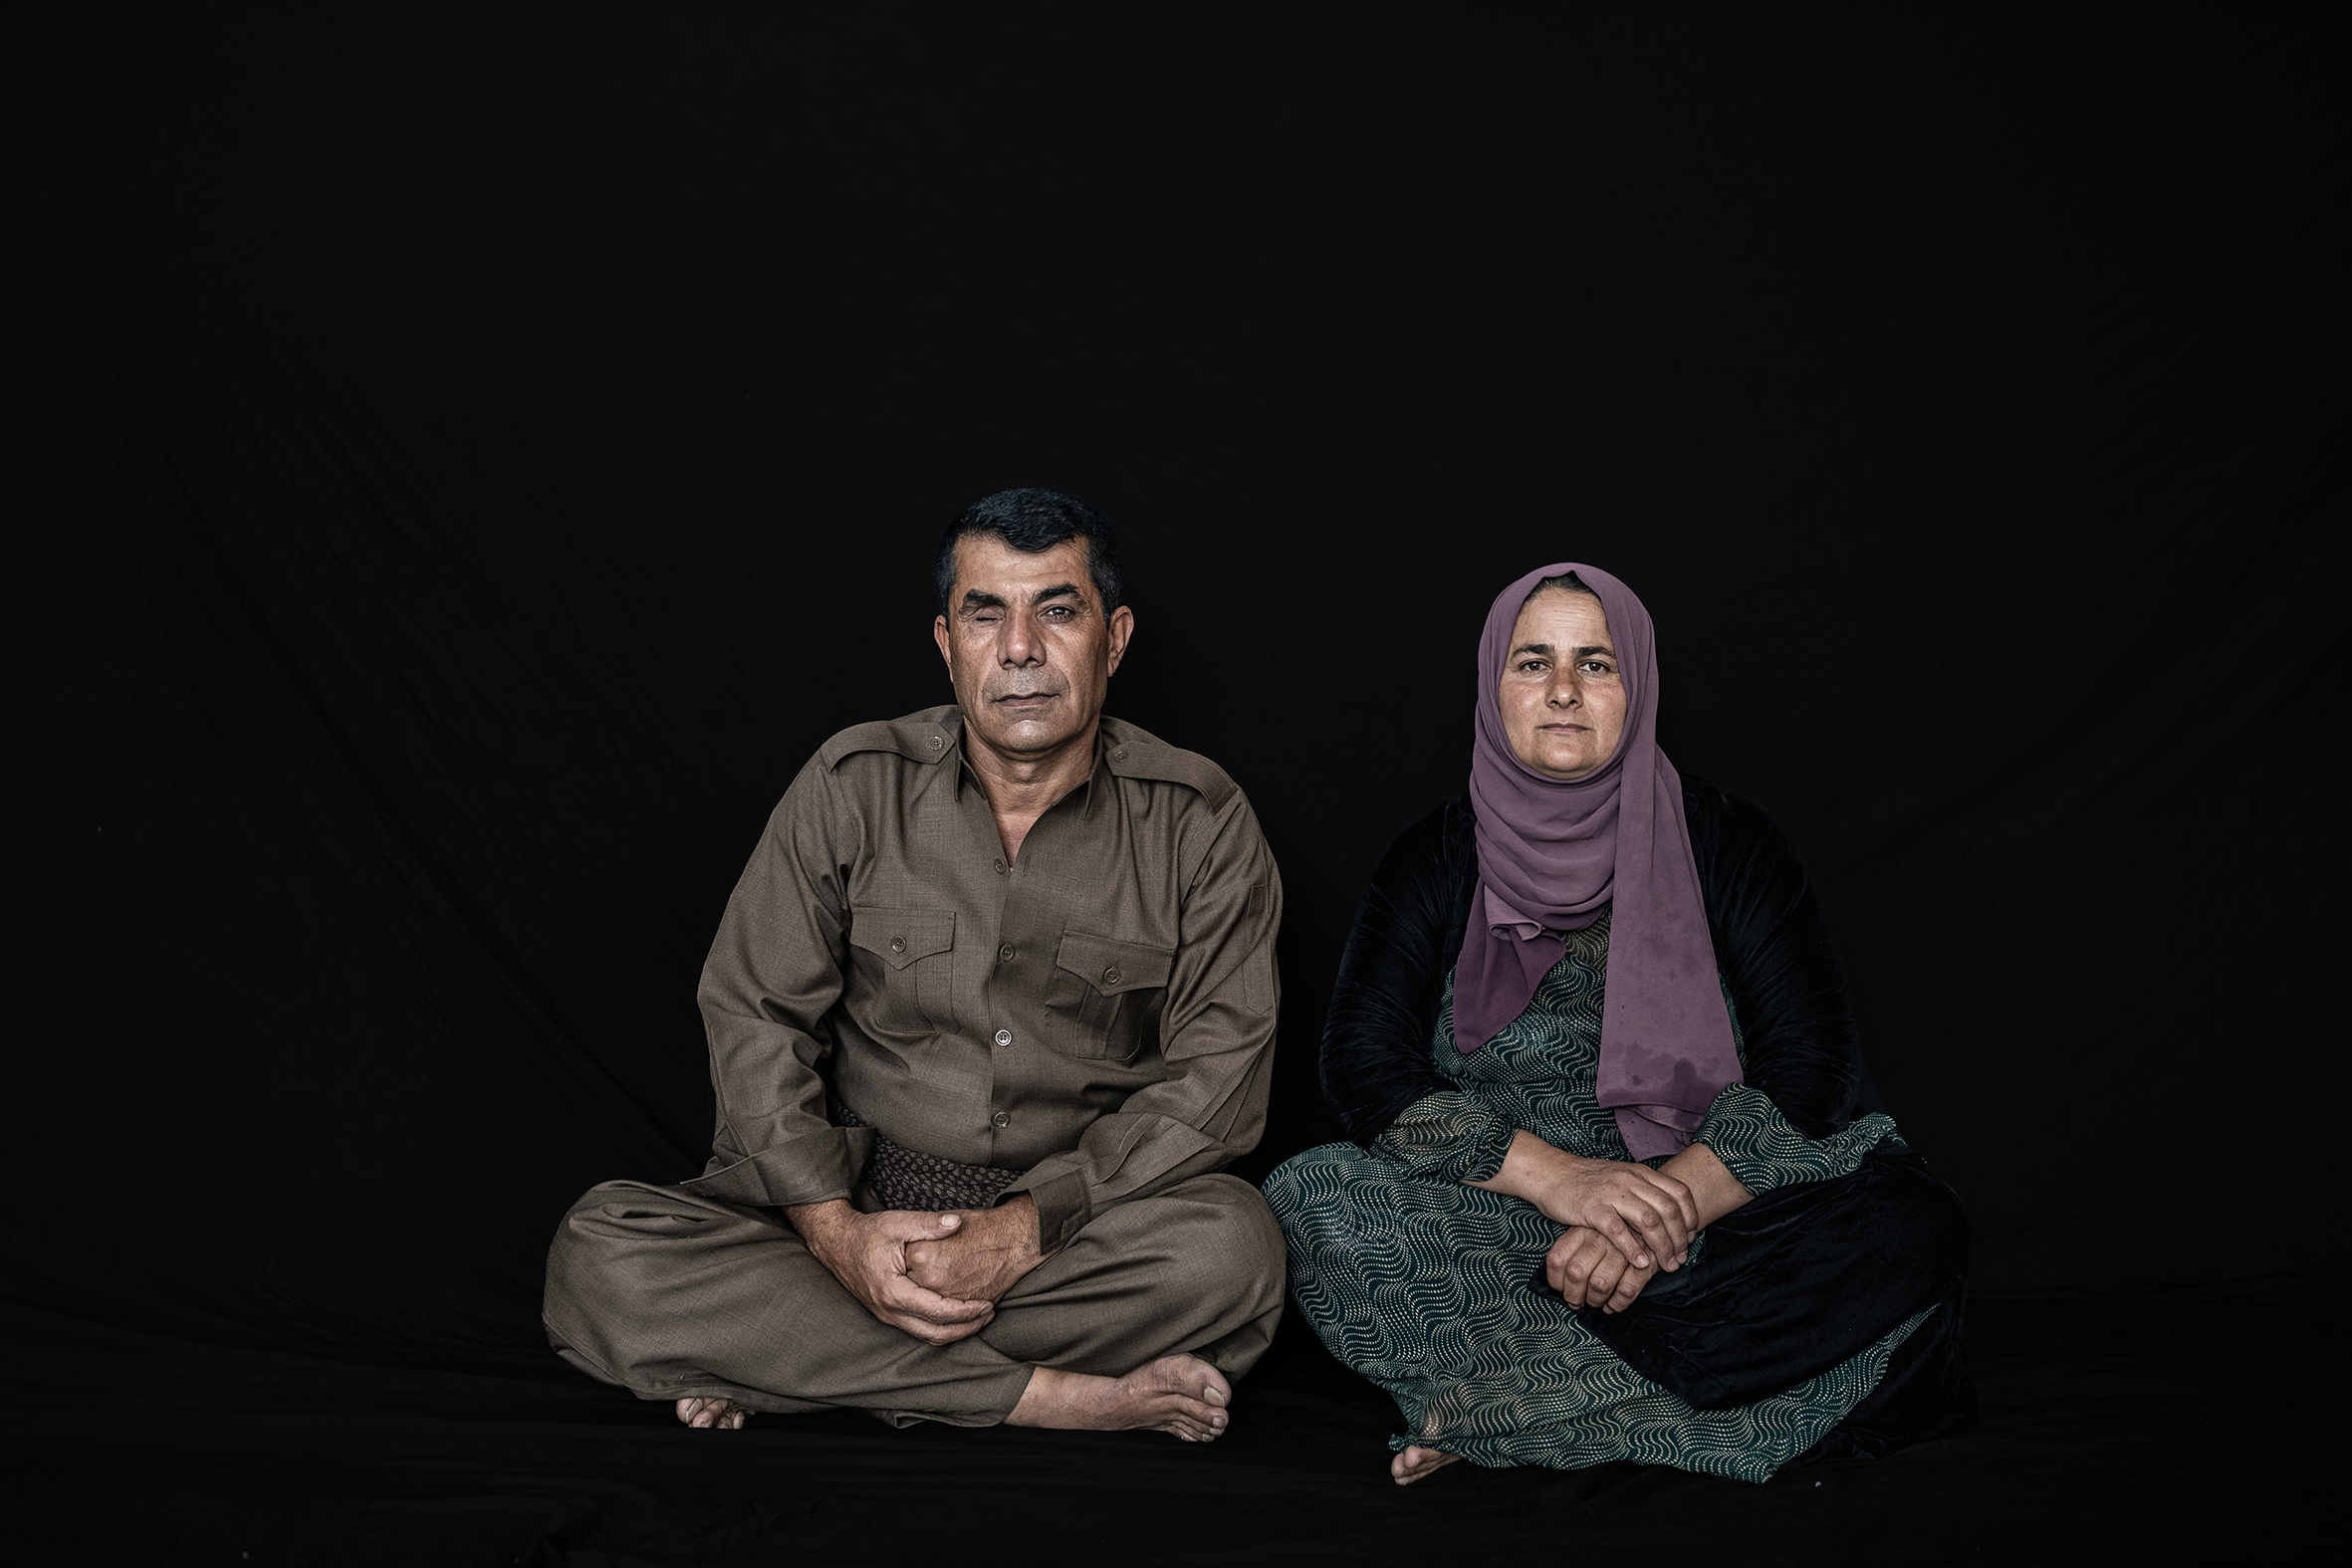 Mohammad Sharif Shakhsa Abdullah was born in 1972 and his wife Bas Hama Kheder was born in 1976, he is Peshmarga since 1991 and he got wounded in fighting ISIS in Jul 2014 with a Grenade or RPG in Jalawla in Diyala province.He lost one eye and he got hundreds of shrapnel in his face and body. After 29 days after his wounding, he goes back to the frontline and continues fighting IS, He has Six kids. According to Media reporters, more than 10,000 Peshmargah were wounded in the IS war.